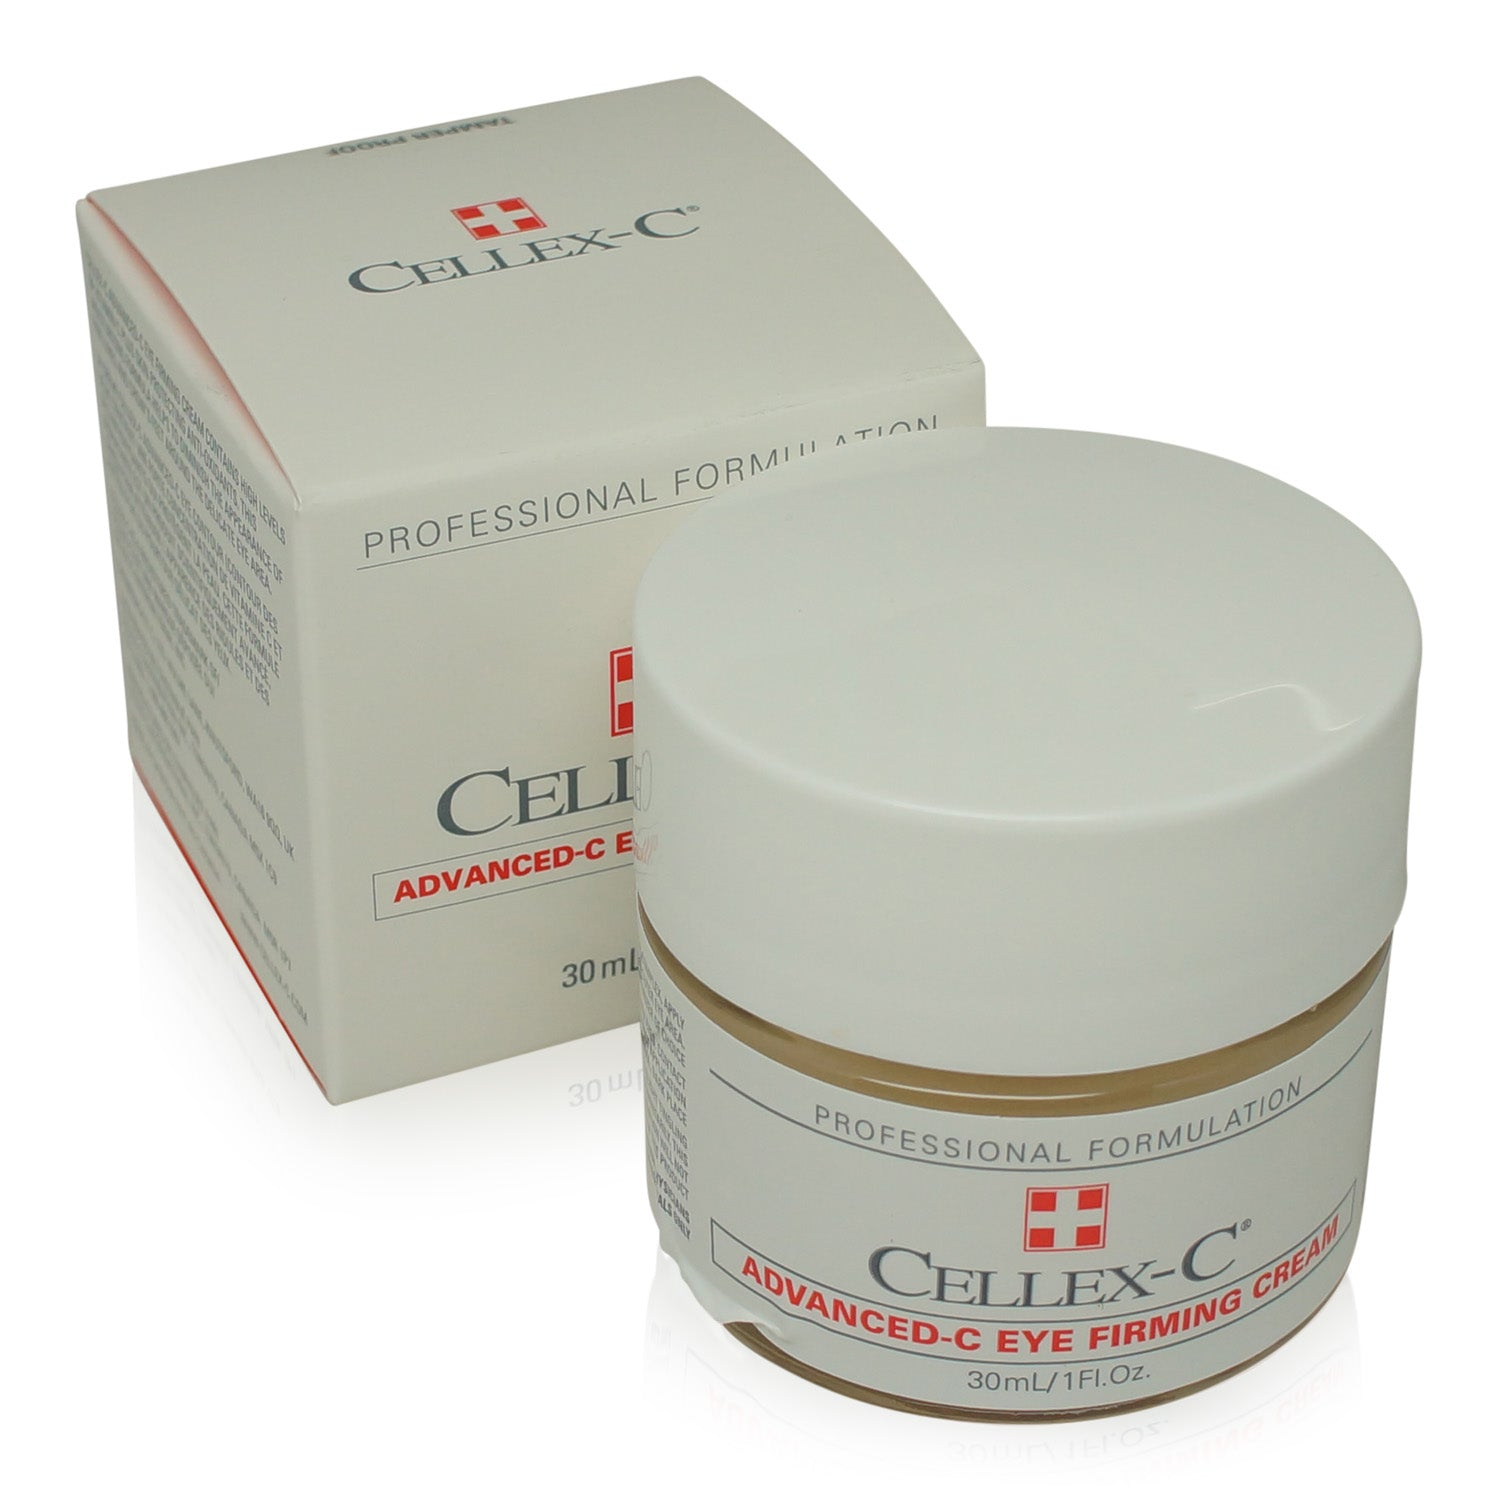 CELLEXC ~ ADVANCED-C EYE FIRMING CREAM ~ 1 fl oz